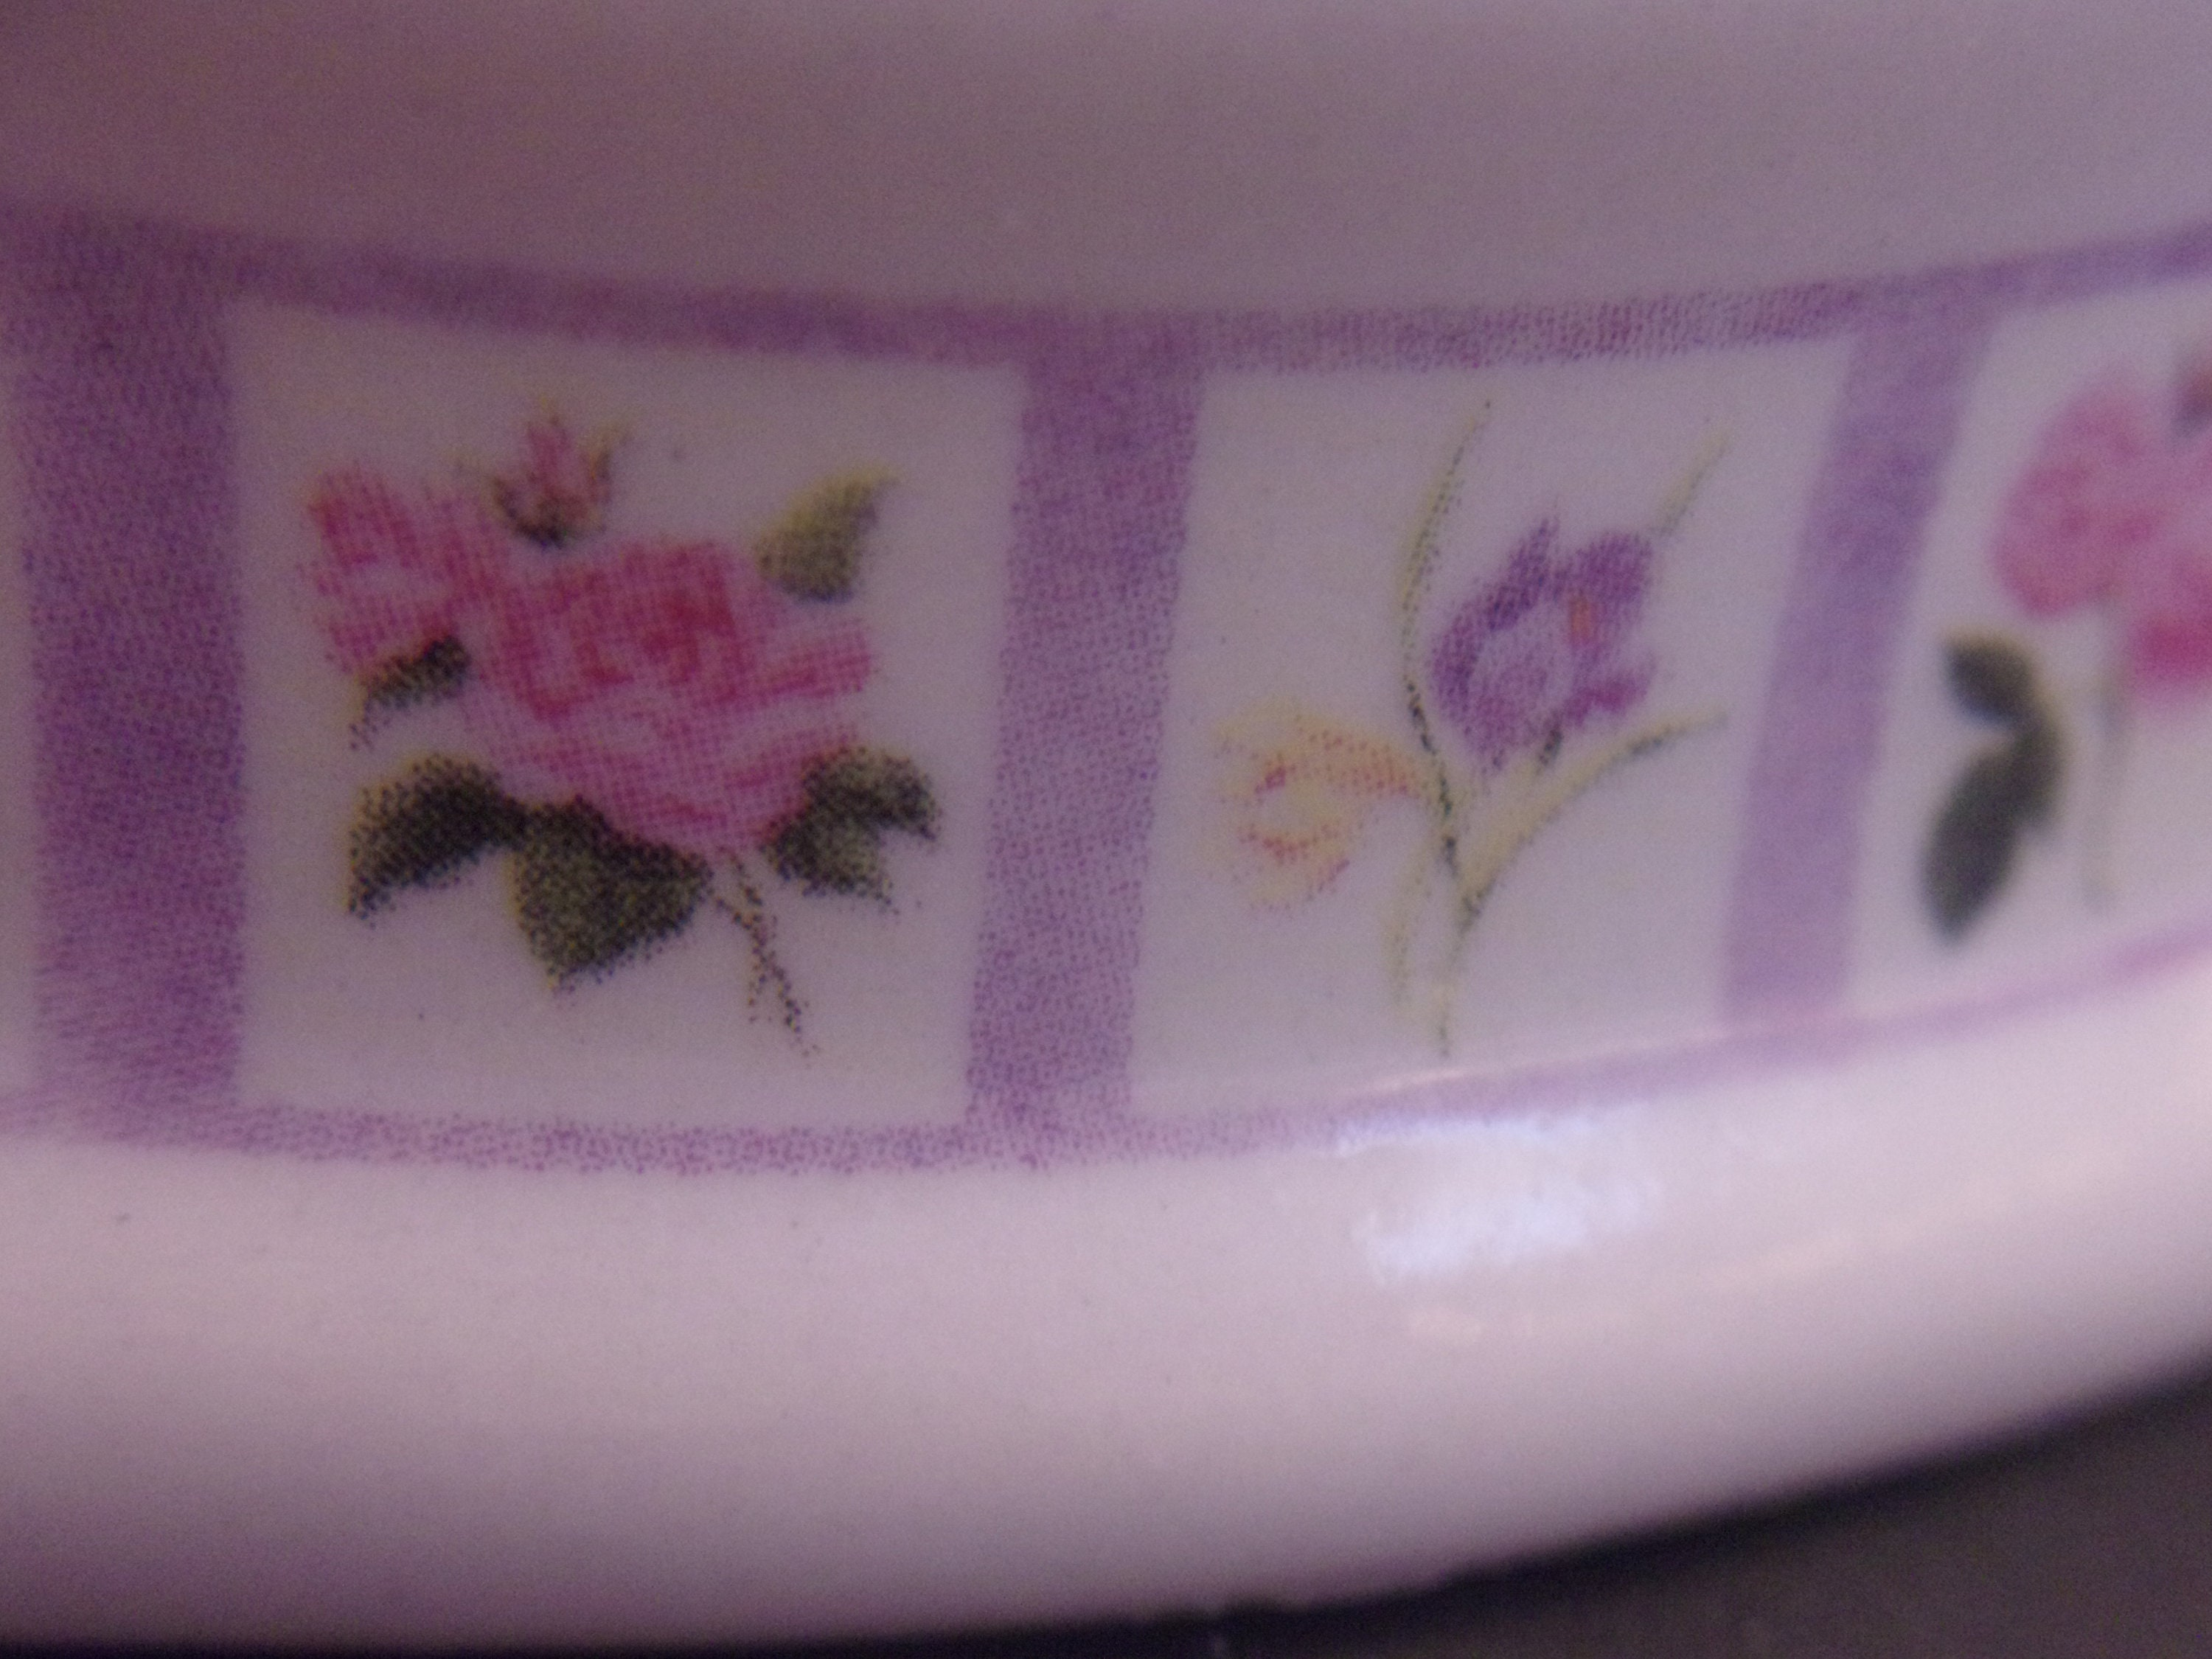 Bill Barnes Floral Ring Holder Dish Flowers Rose Crocus Lilac Peony Vanity Table Home Decor